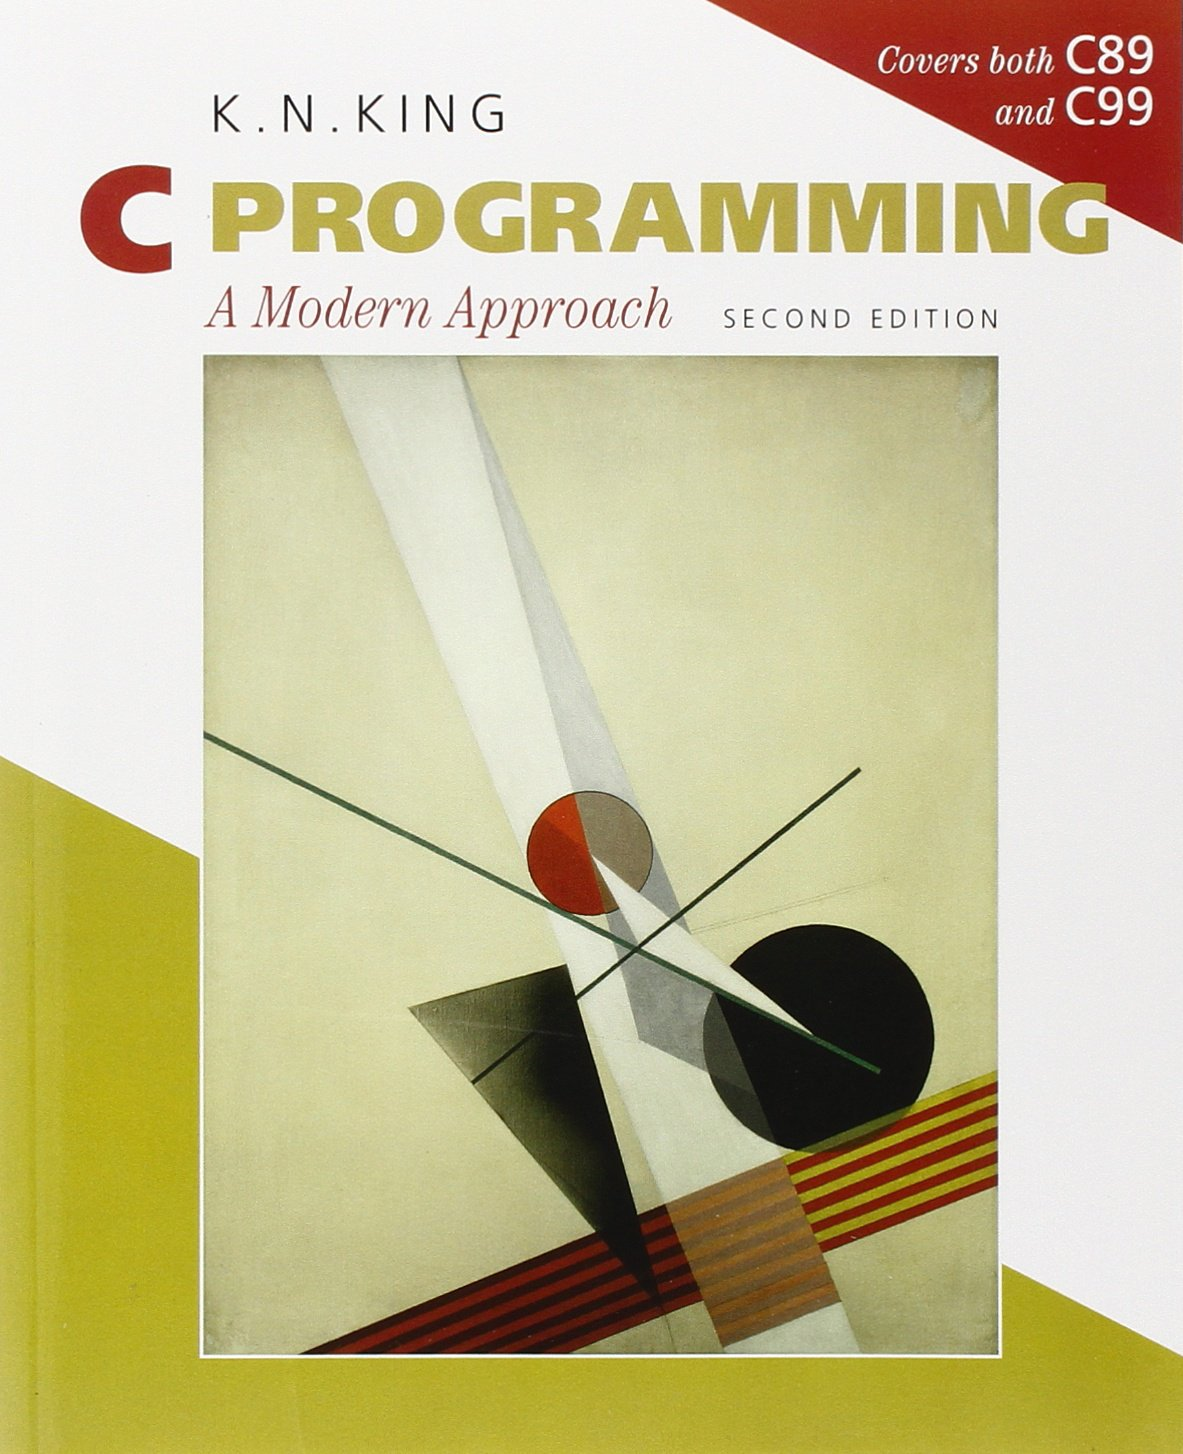 C programming: a modern approach, 2nd edition by: k. N. King.